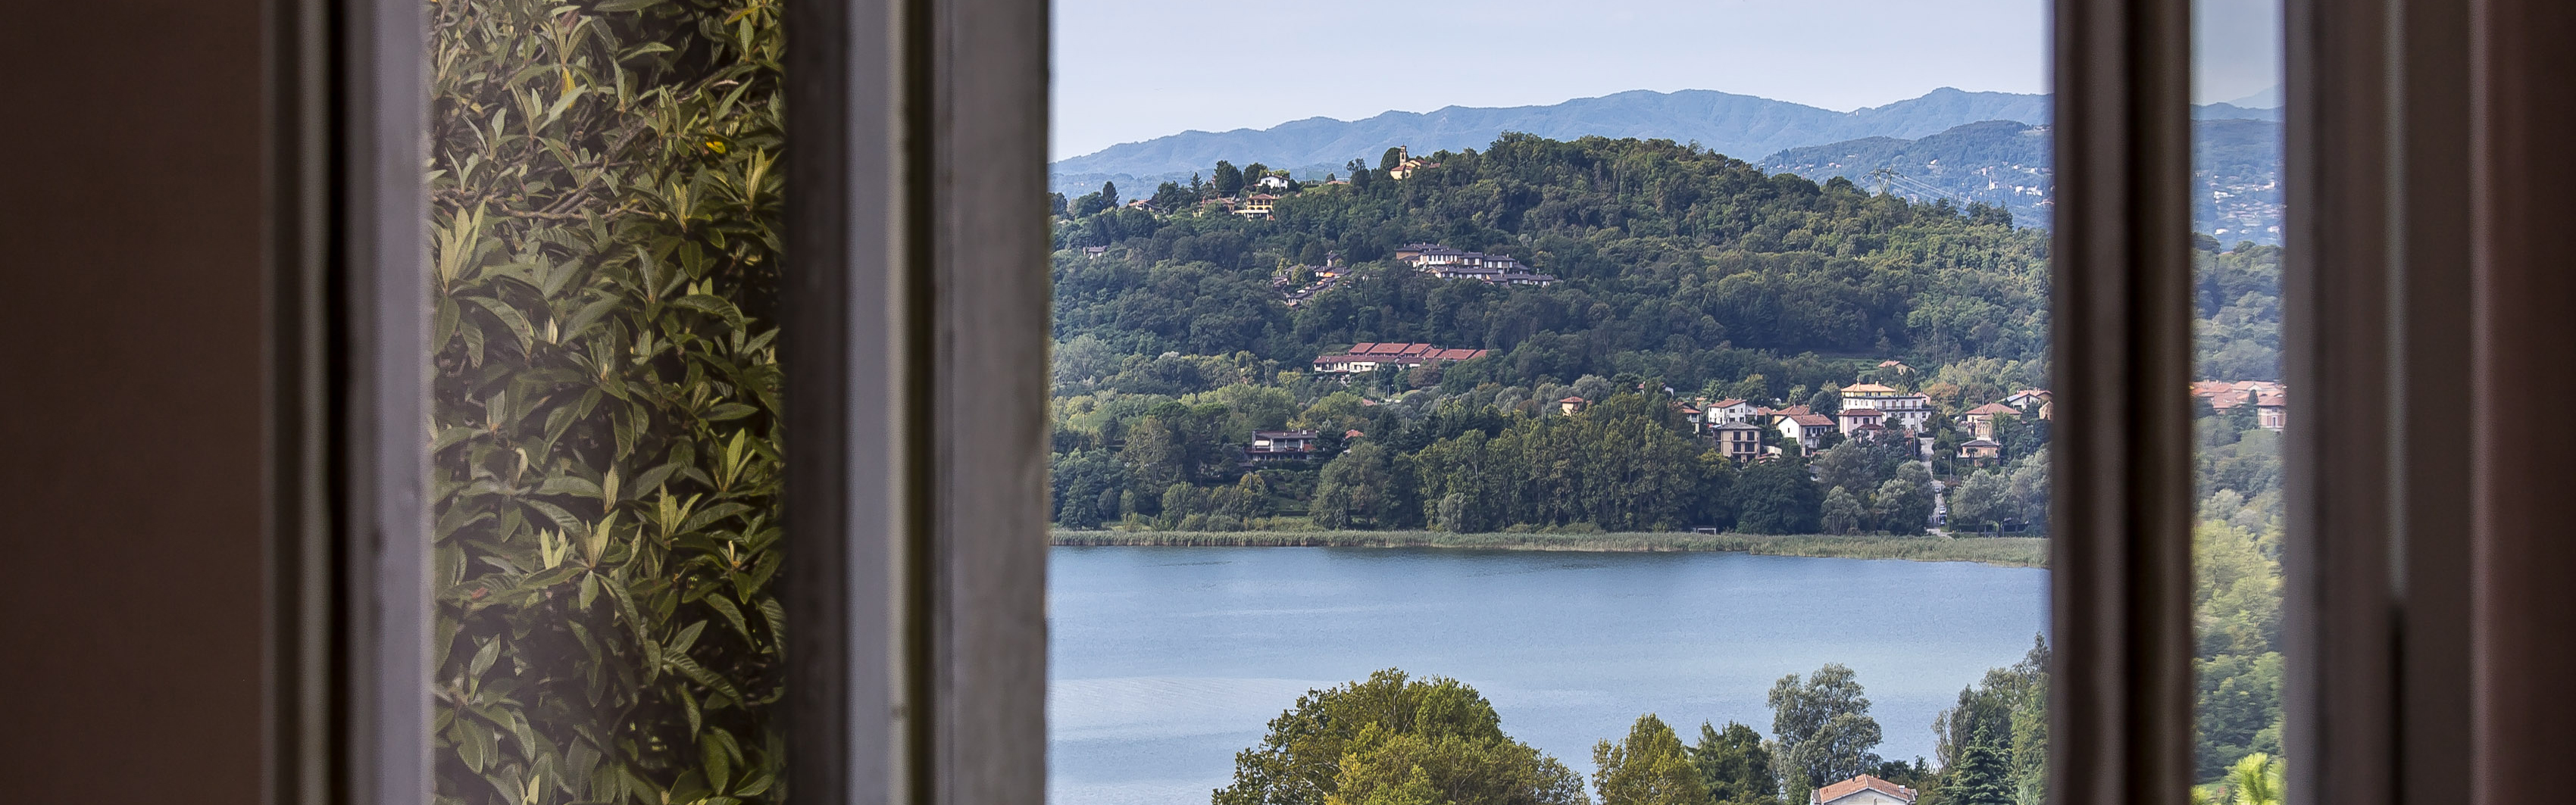 Varese - Real Estate